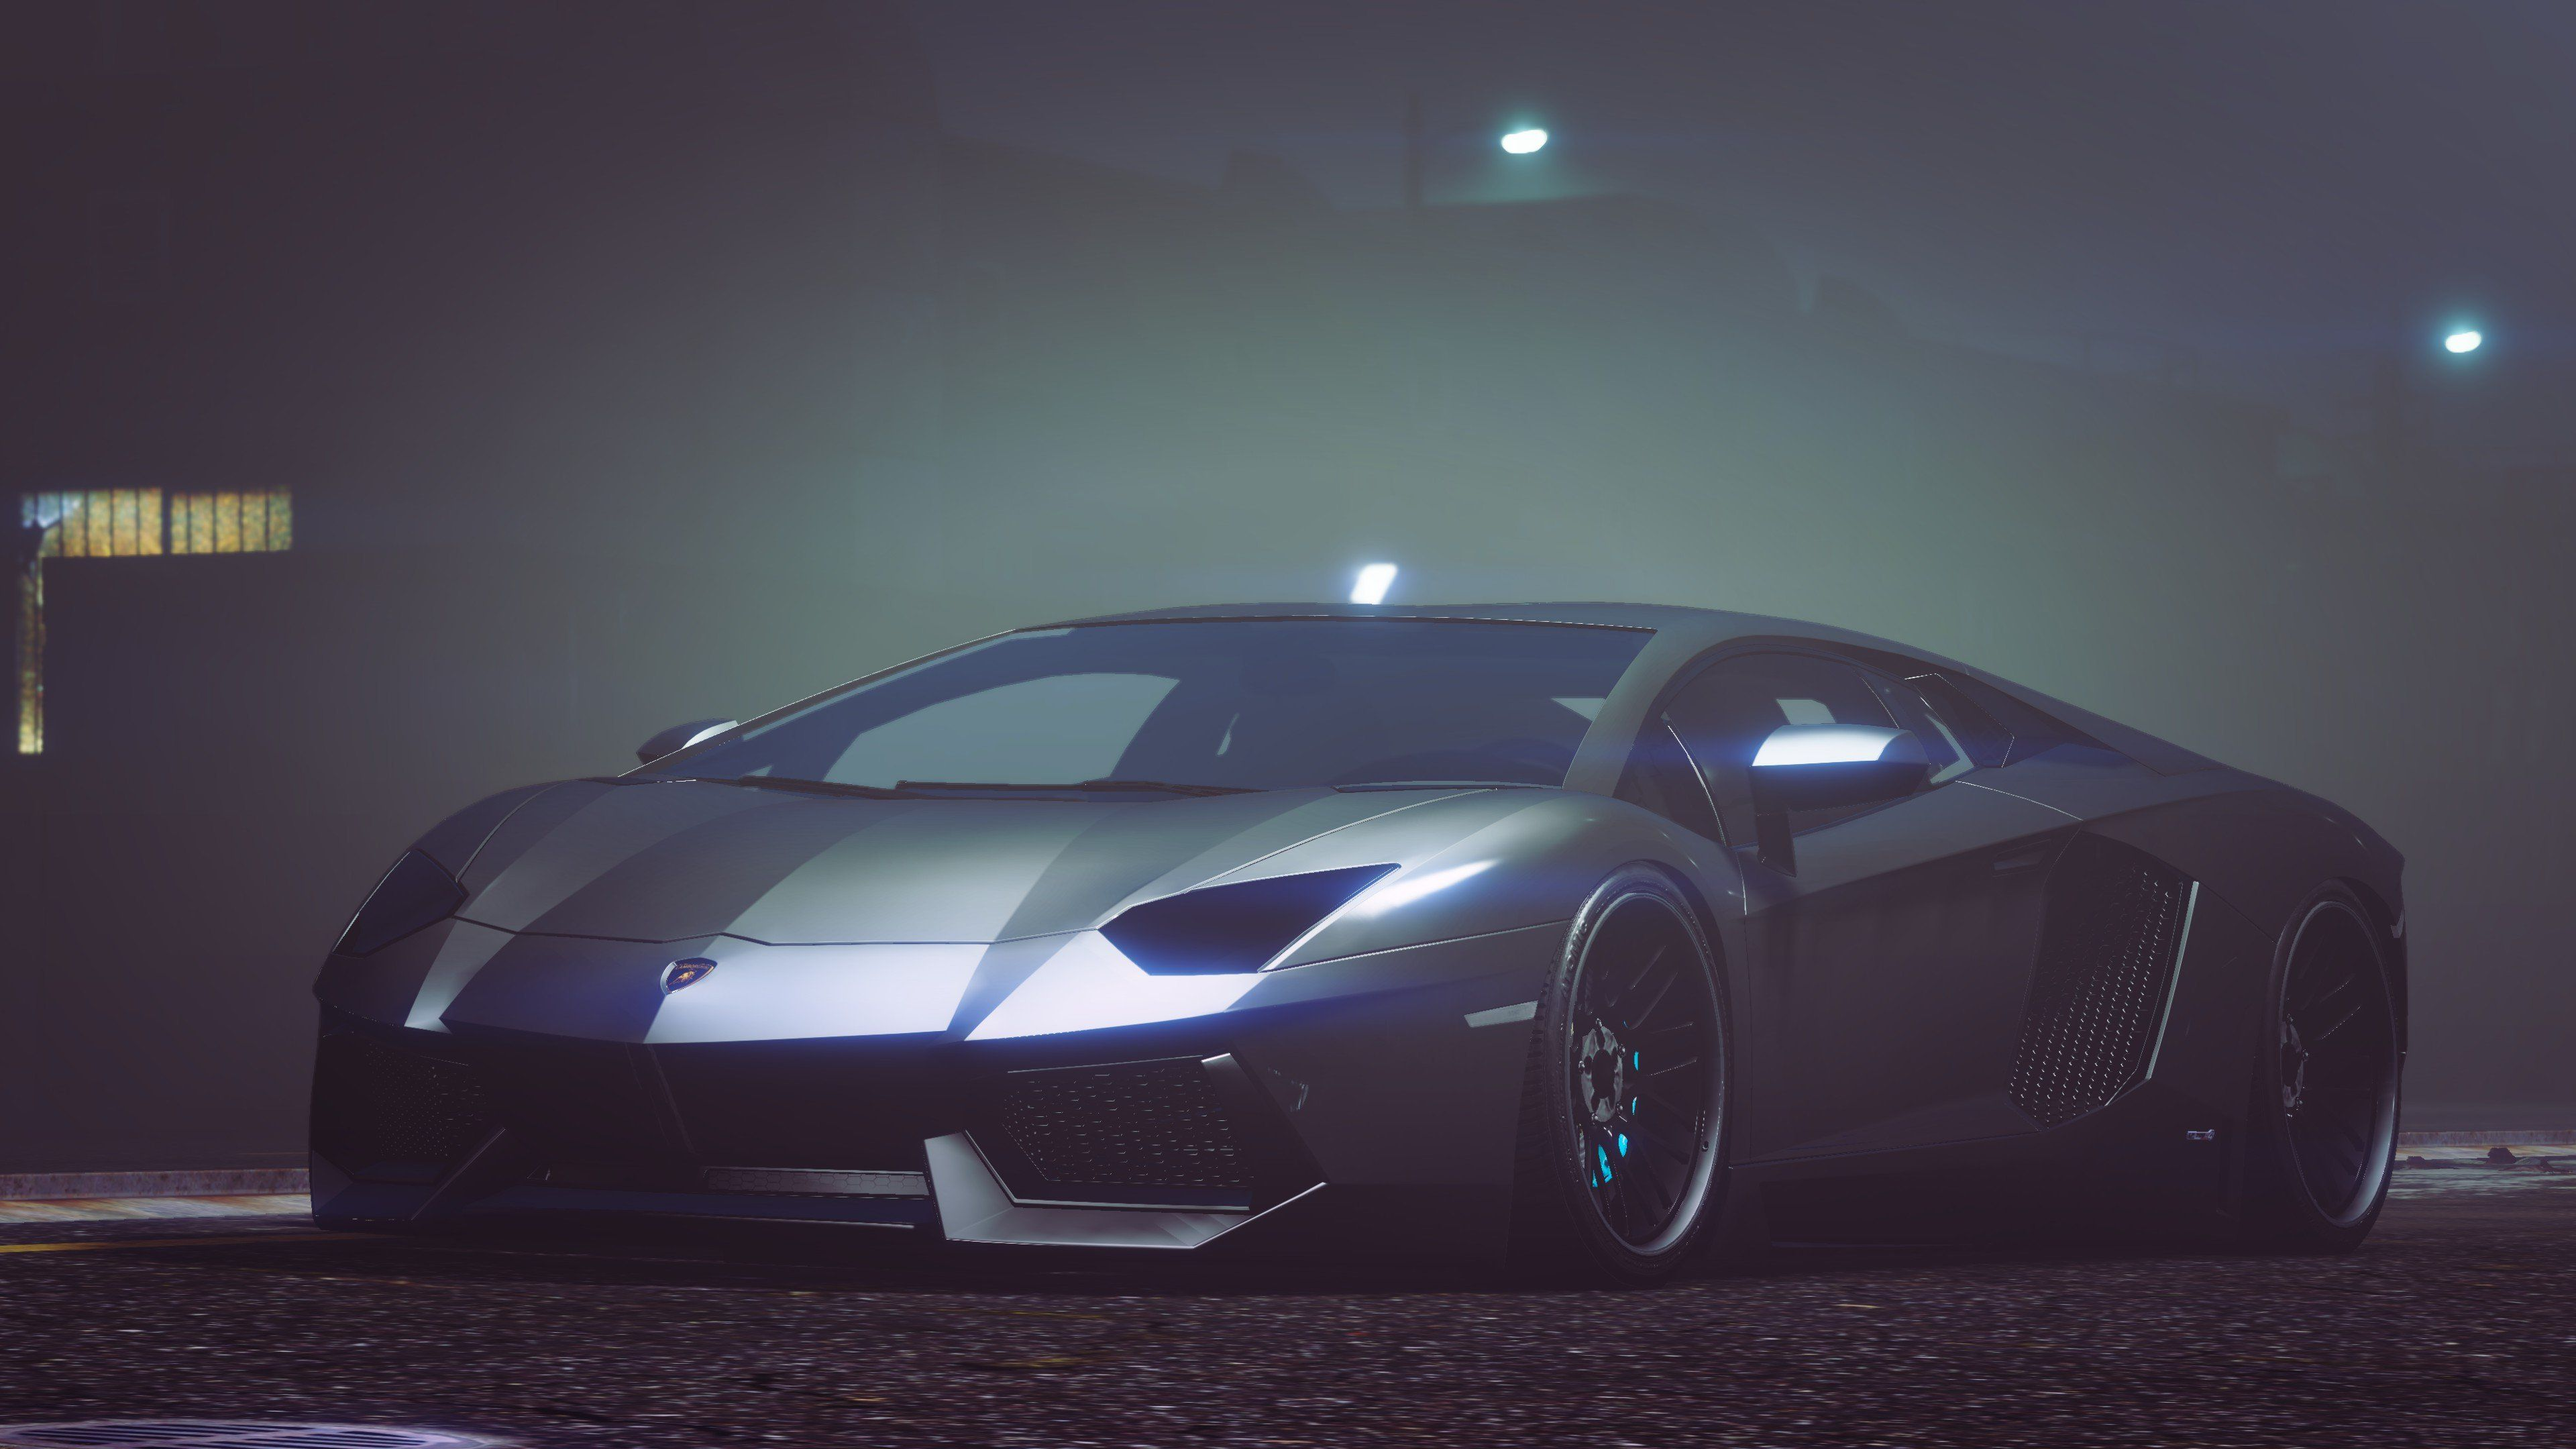 You Can Now Drive Your Favorite Real Supercars In Gta V Super Cars Gta Gta 5 Mods